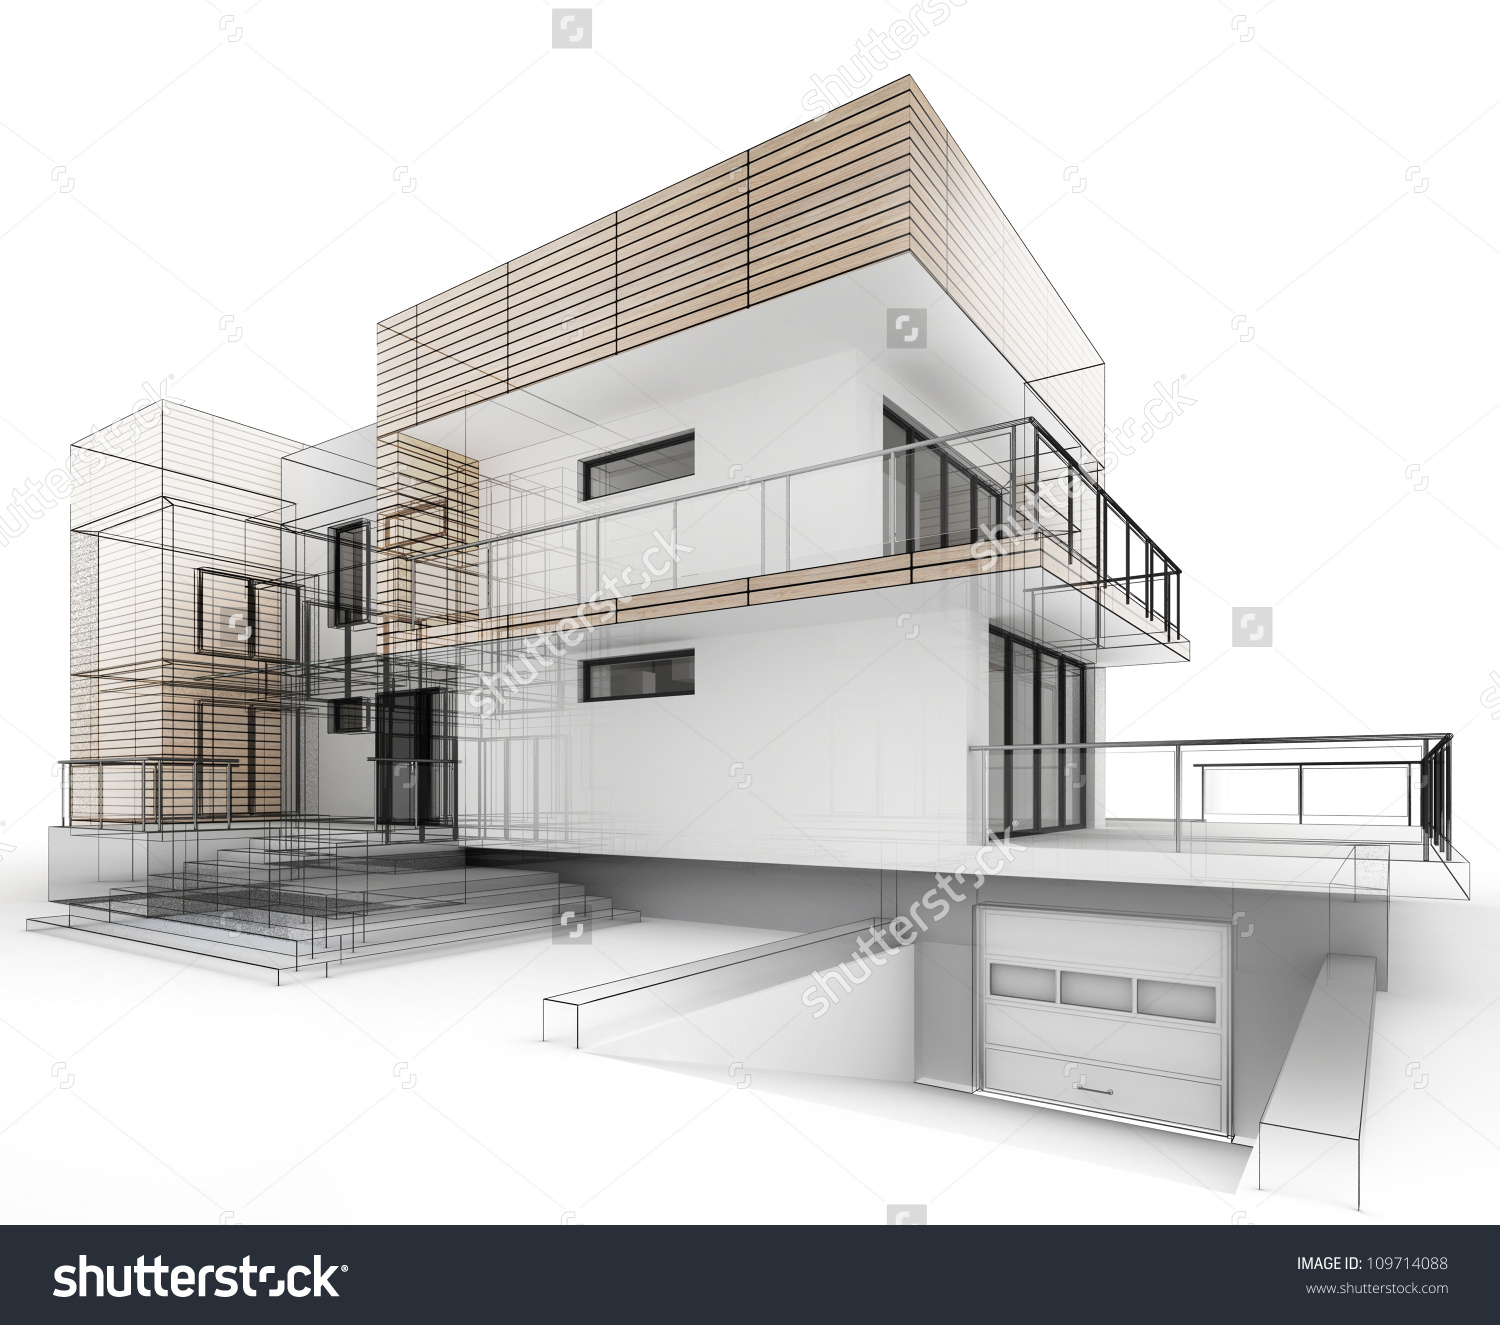 Architecture House Drawing at GetDrawings.com | Free for personal ...